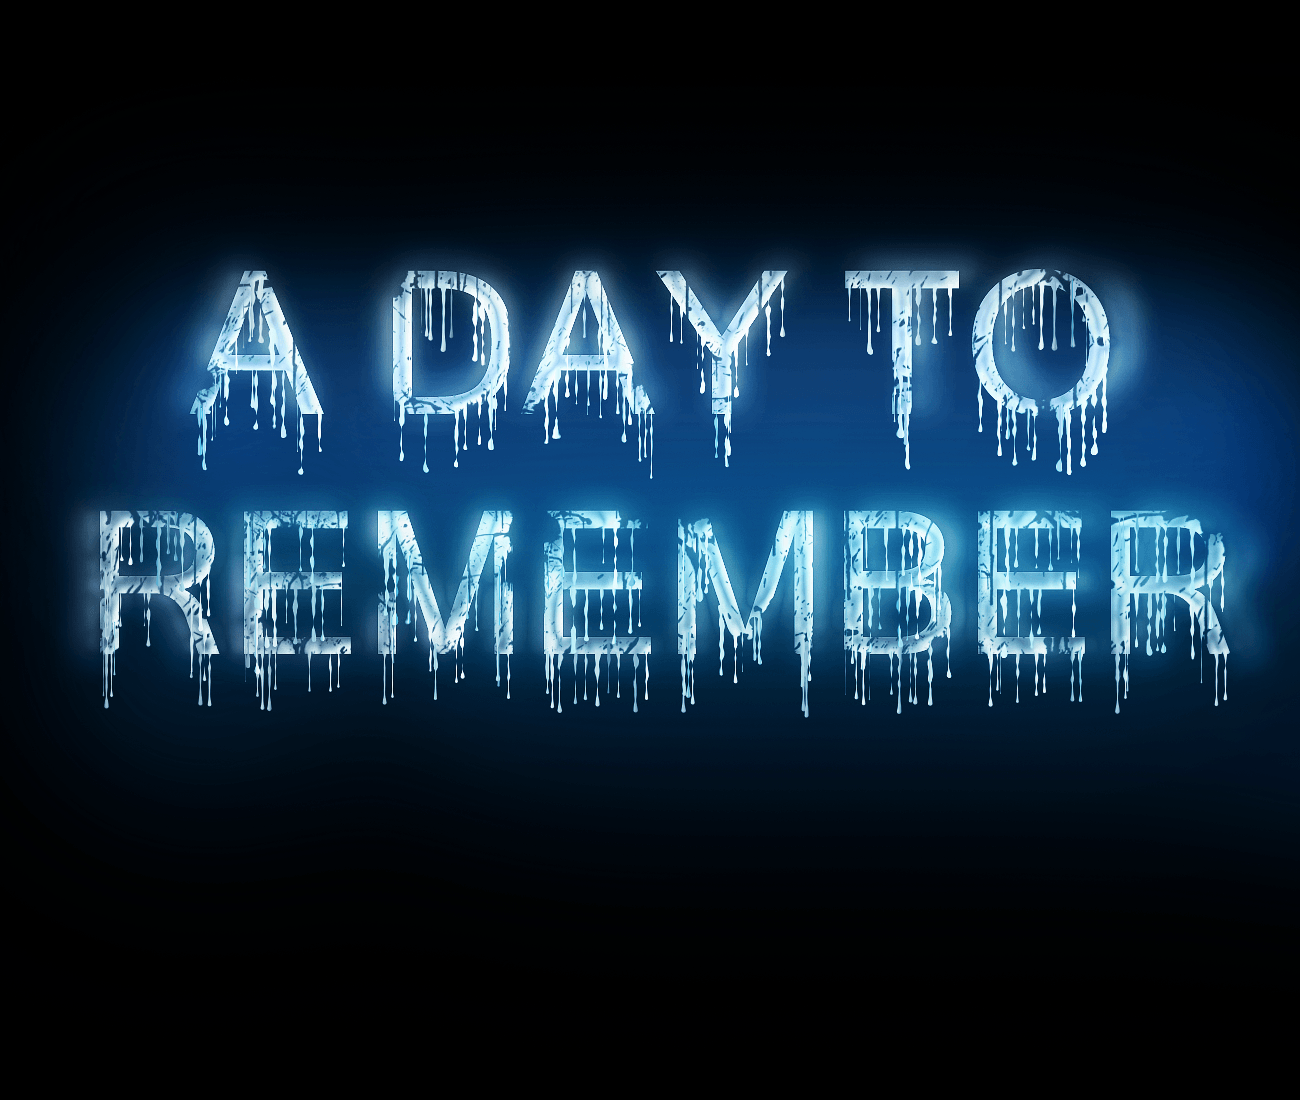 DeviantArt: More Like A Day To Remember Wallpapers 2 by pato92